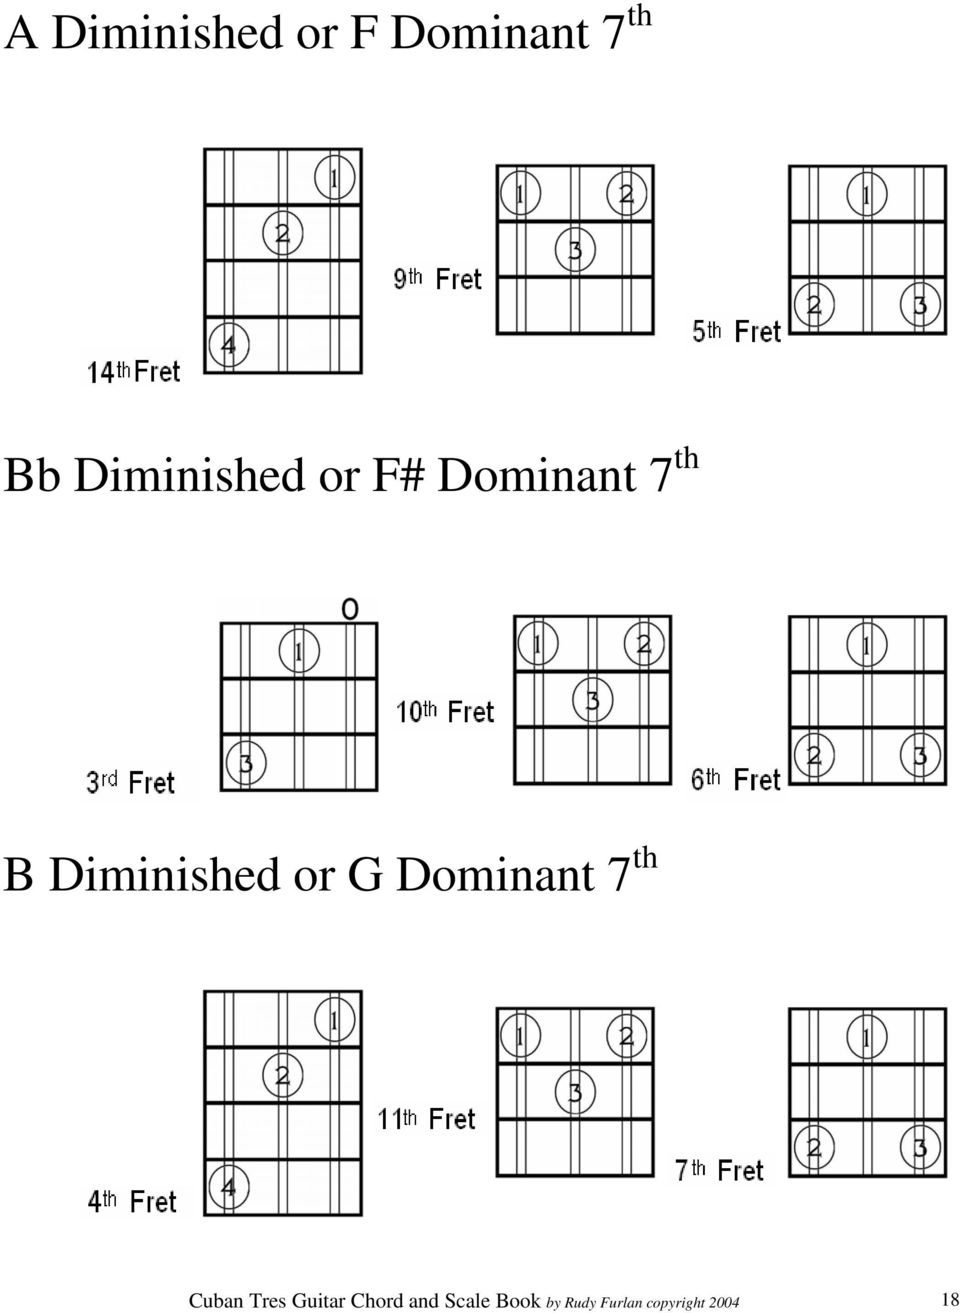 Cuban Tres Guitar Chord Scale Book Pdf